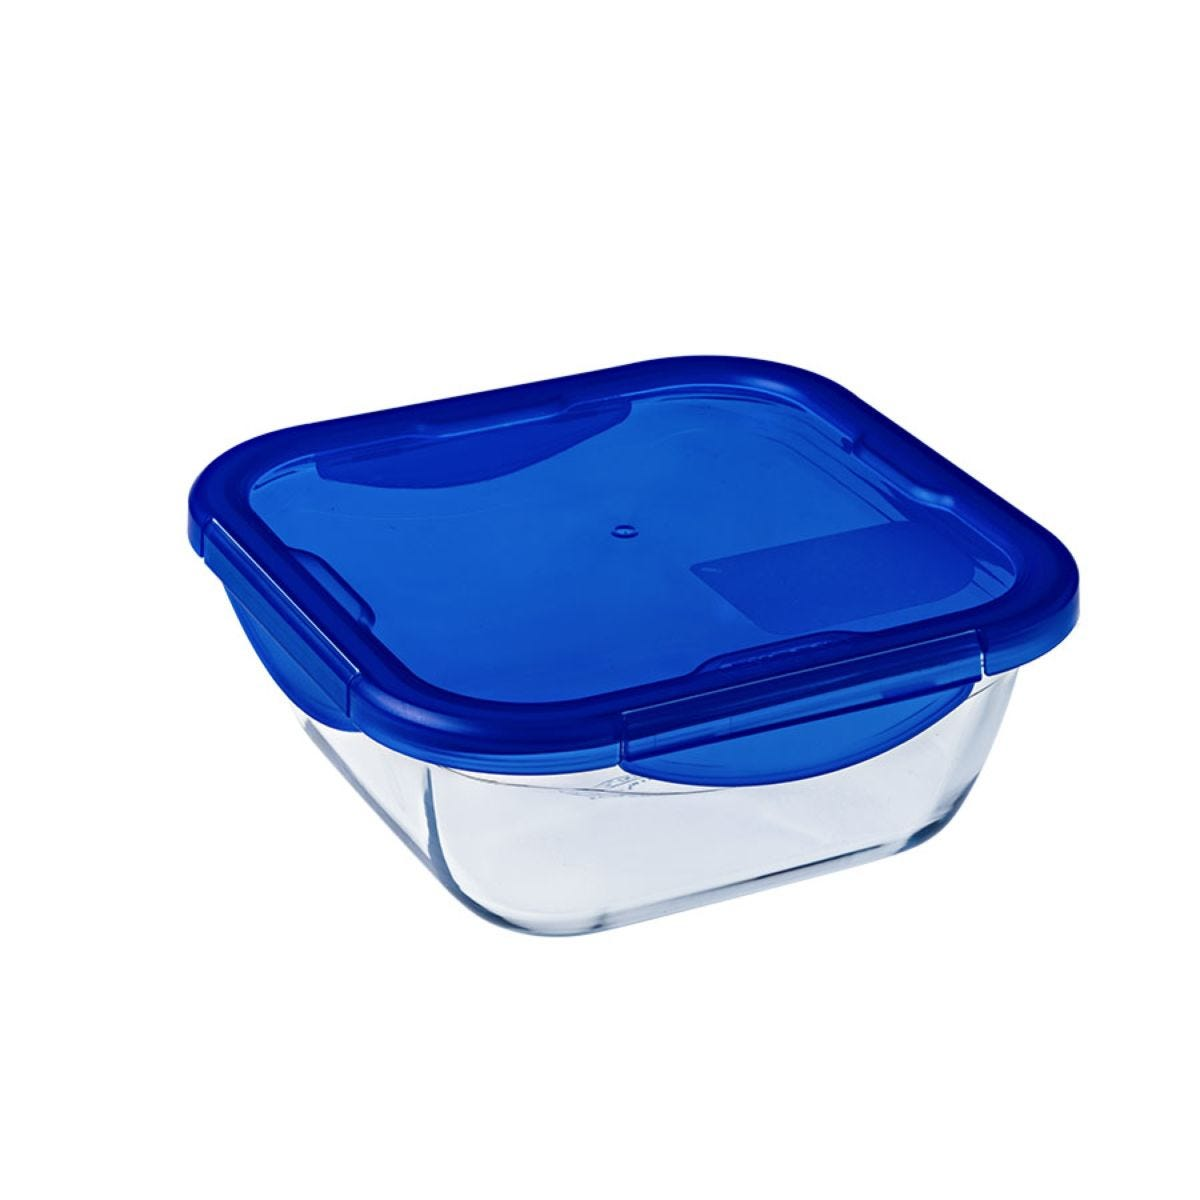 Pyrex Cook & Go Square Dish - 1900ml